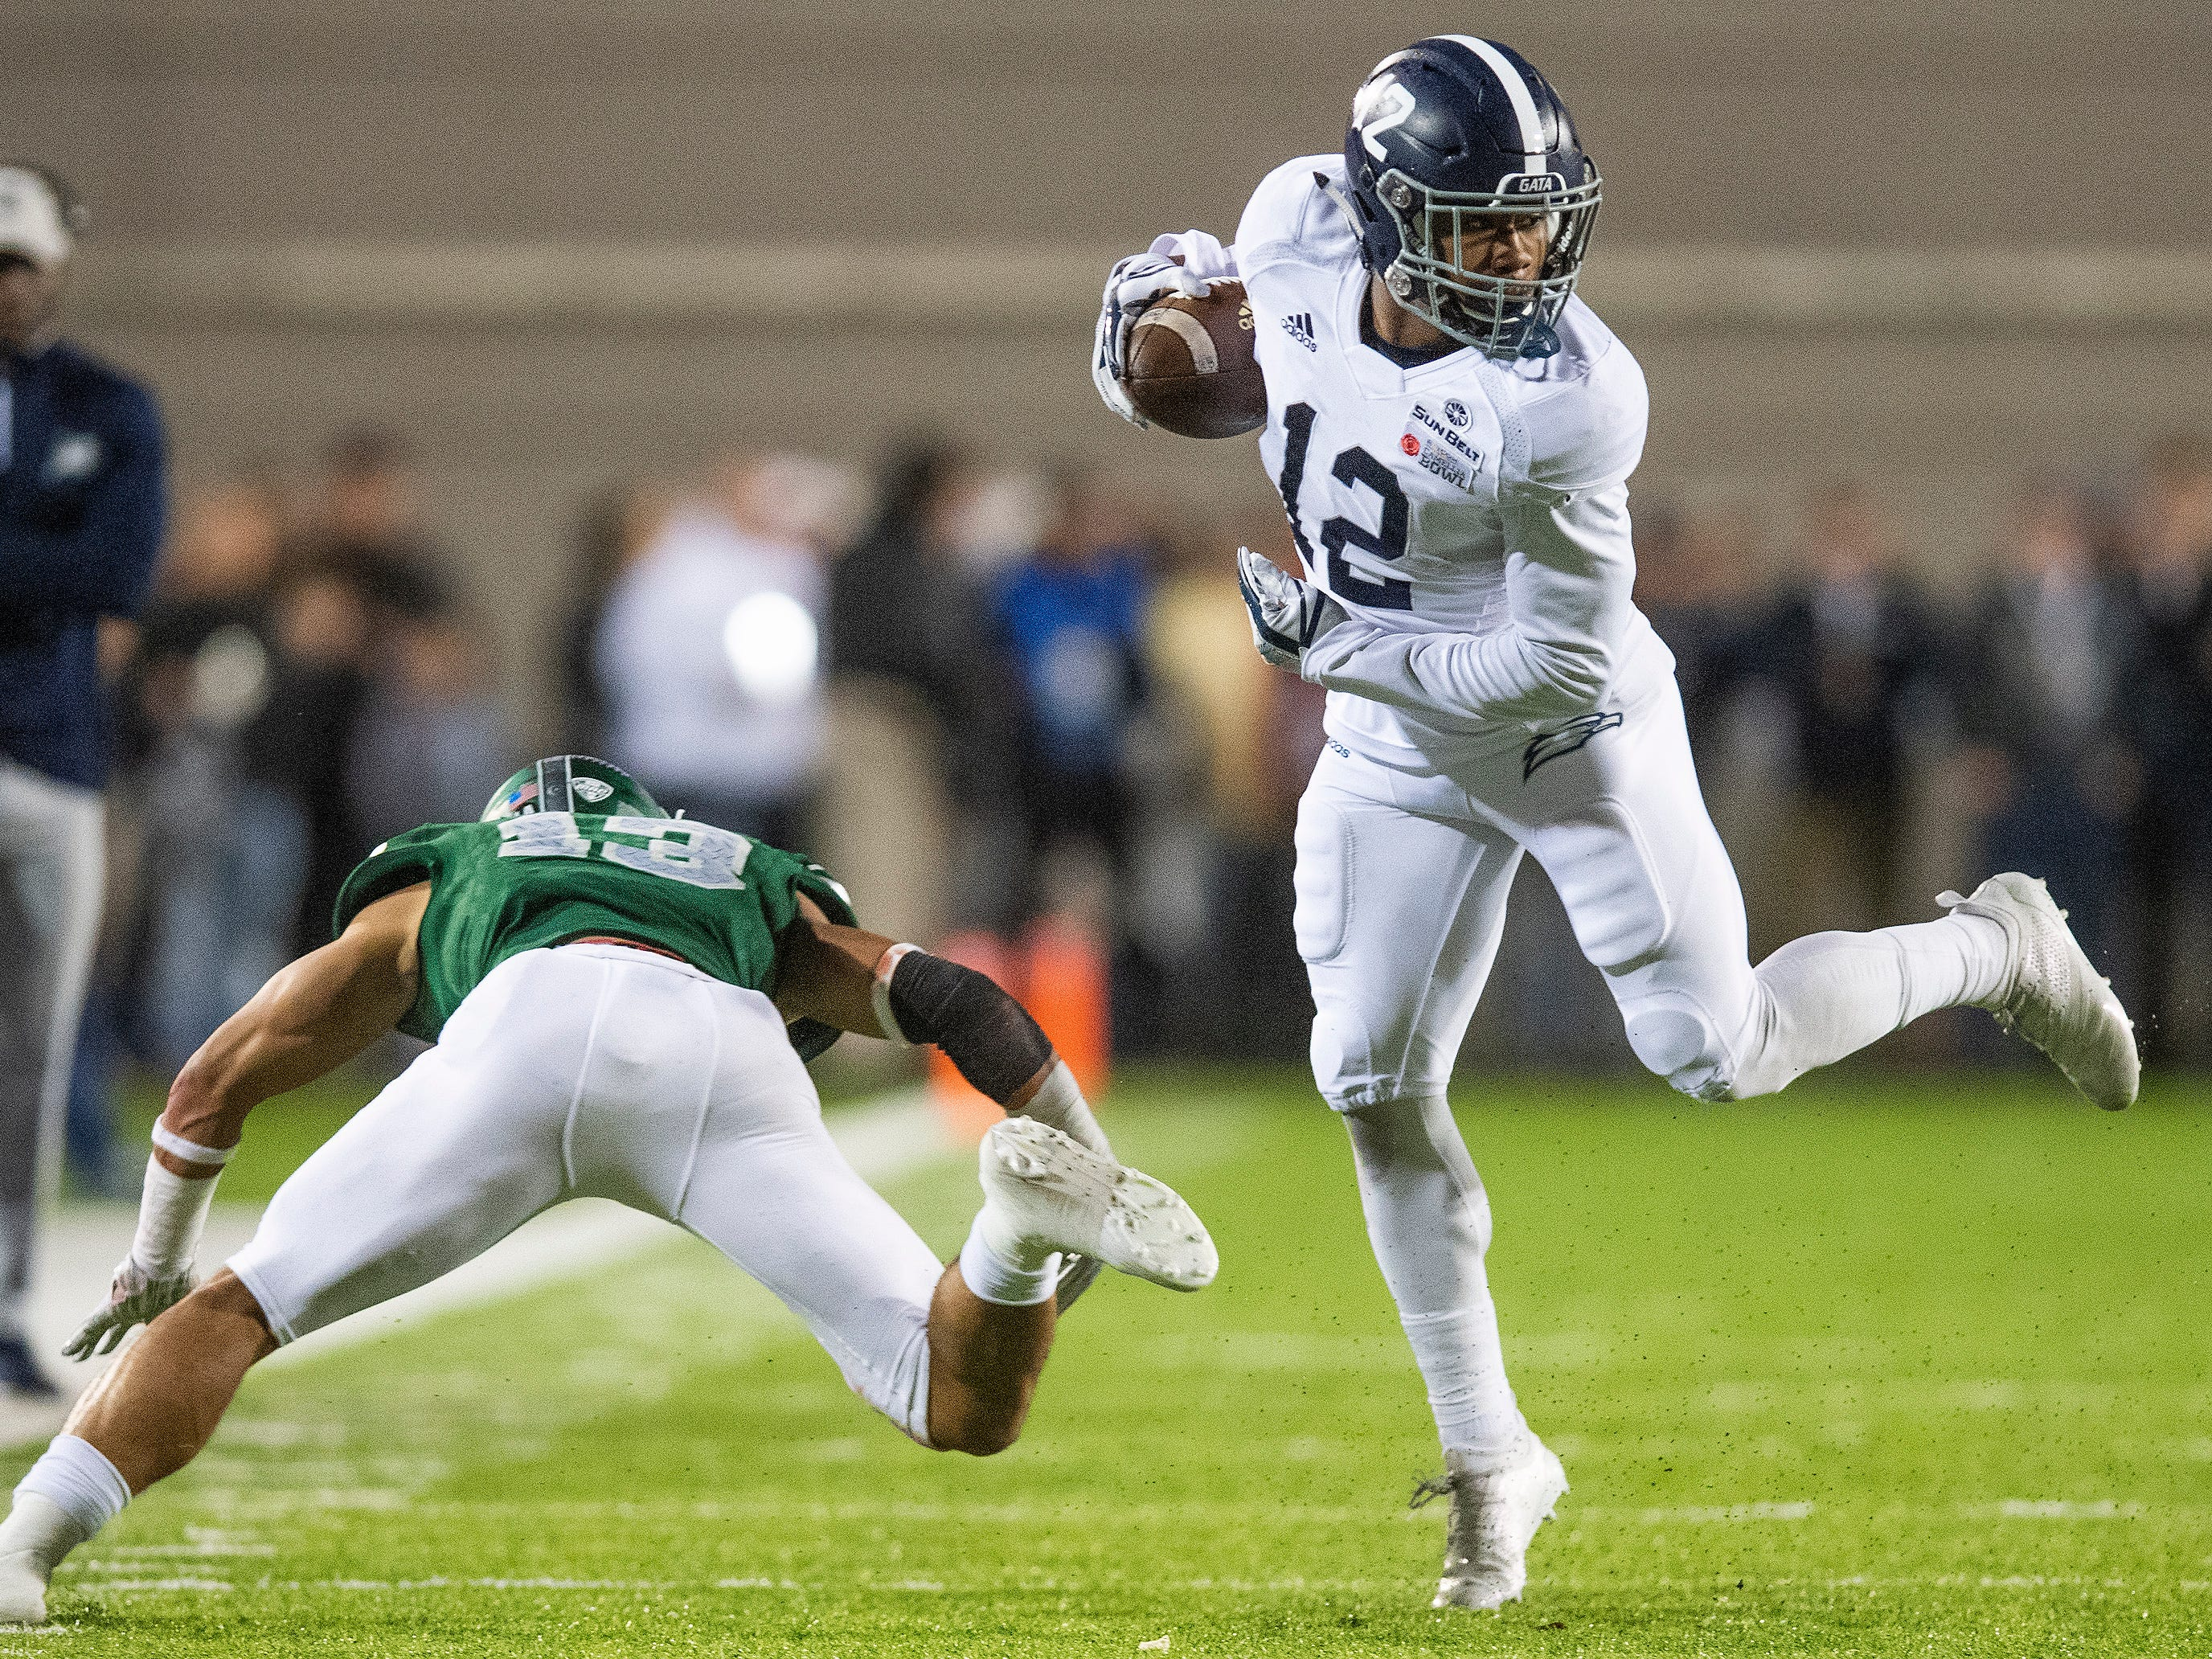 Georgia Southern running back Wesley Kennedy, III, (12) eludes Eastern Michigan defensive back Justin Moody (13) in the Raycom Media  Camellia Bowl held at Cramton Bowl in Montgomery, Ala., on Saturday December 15, 2018.